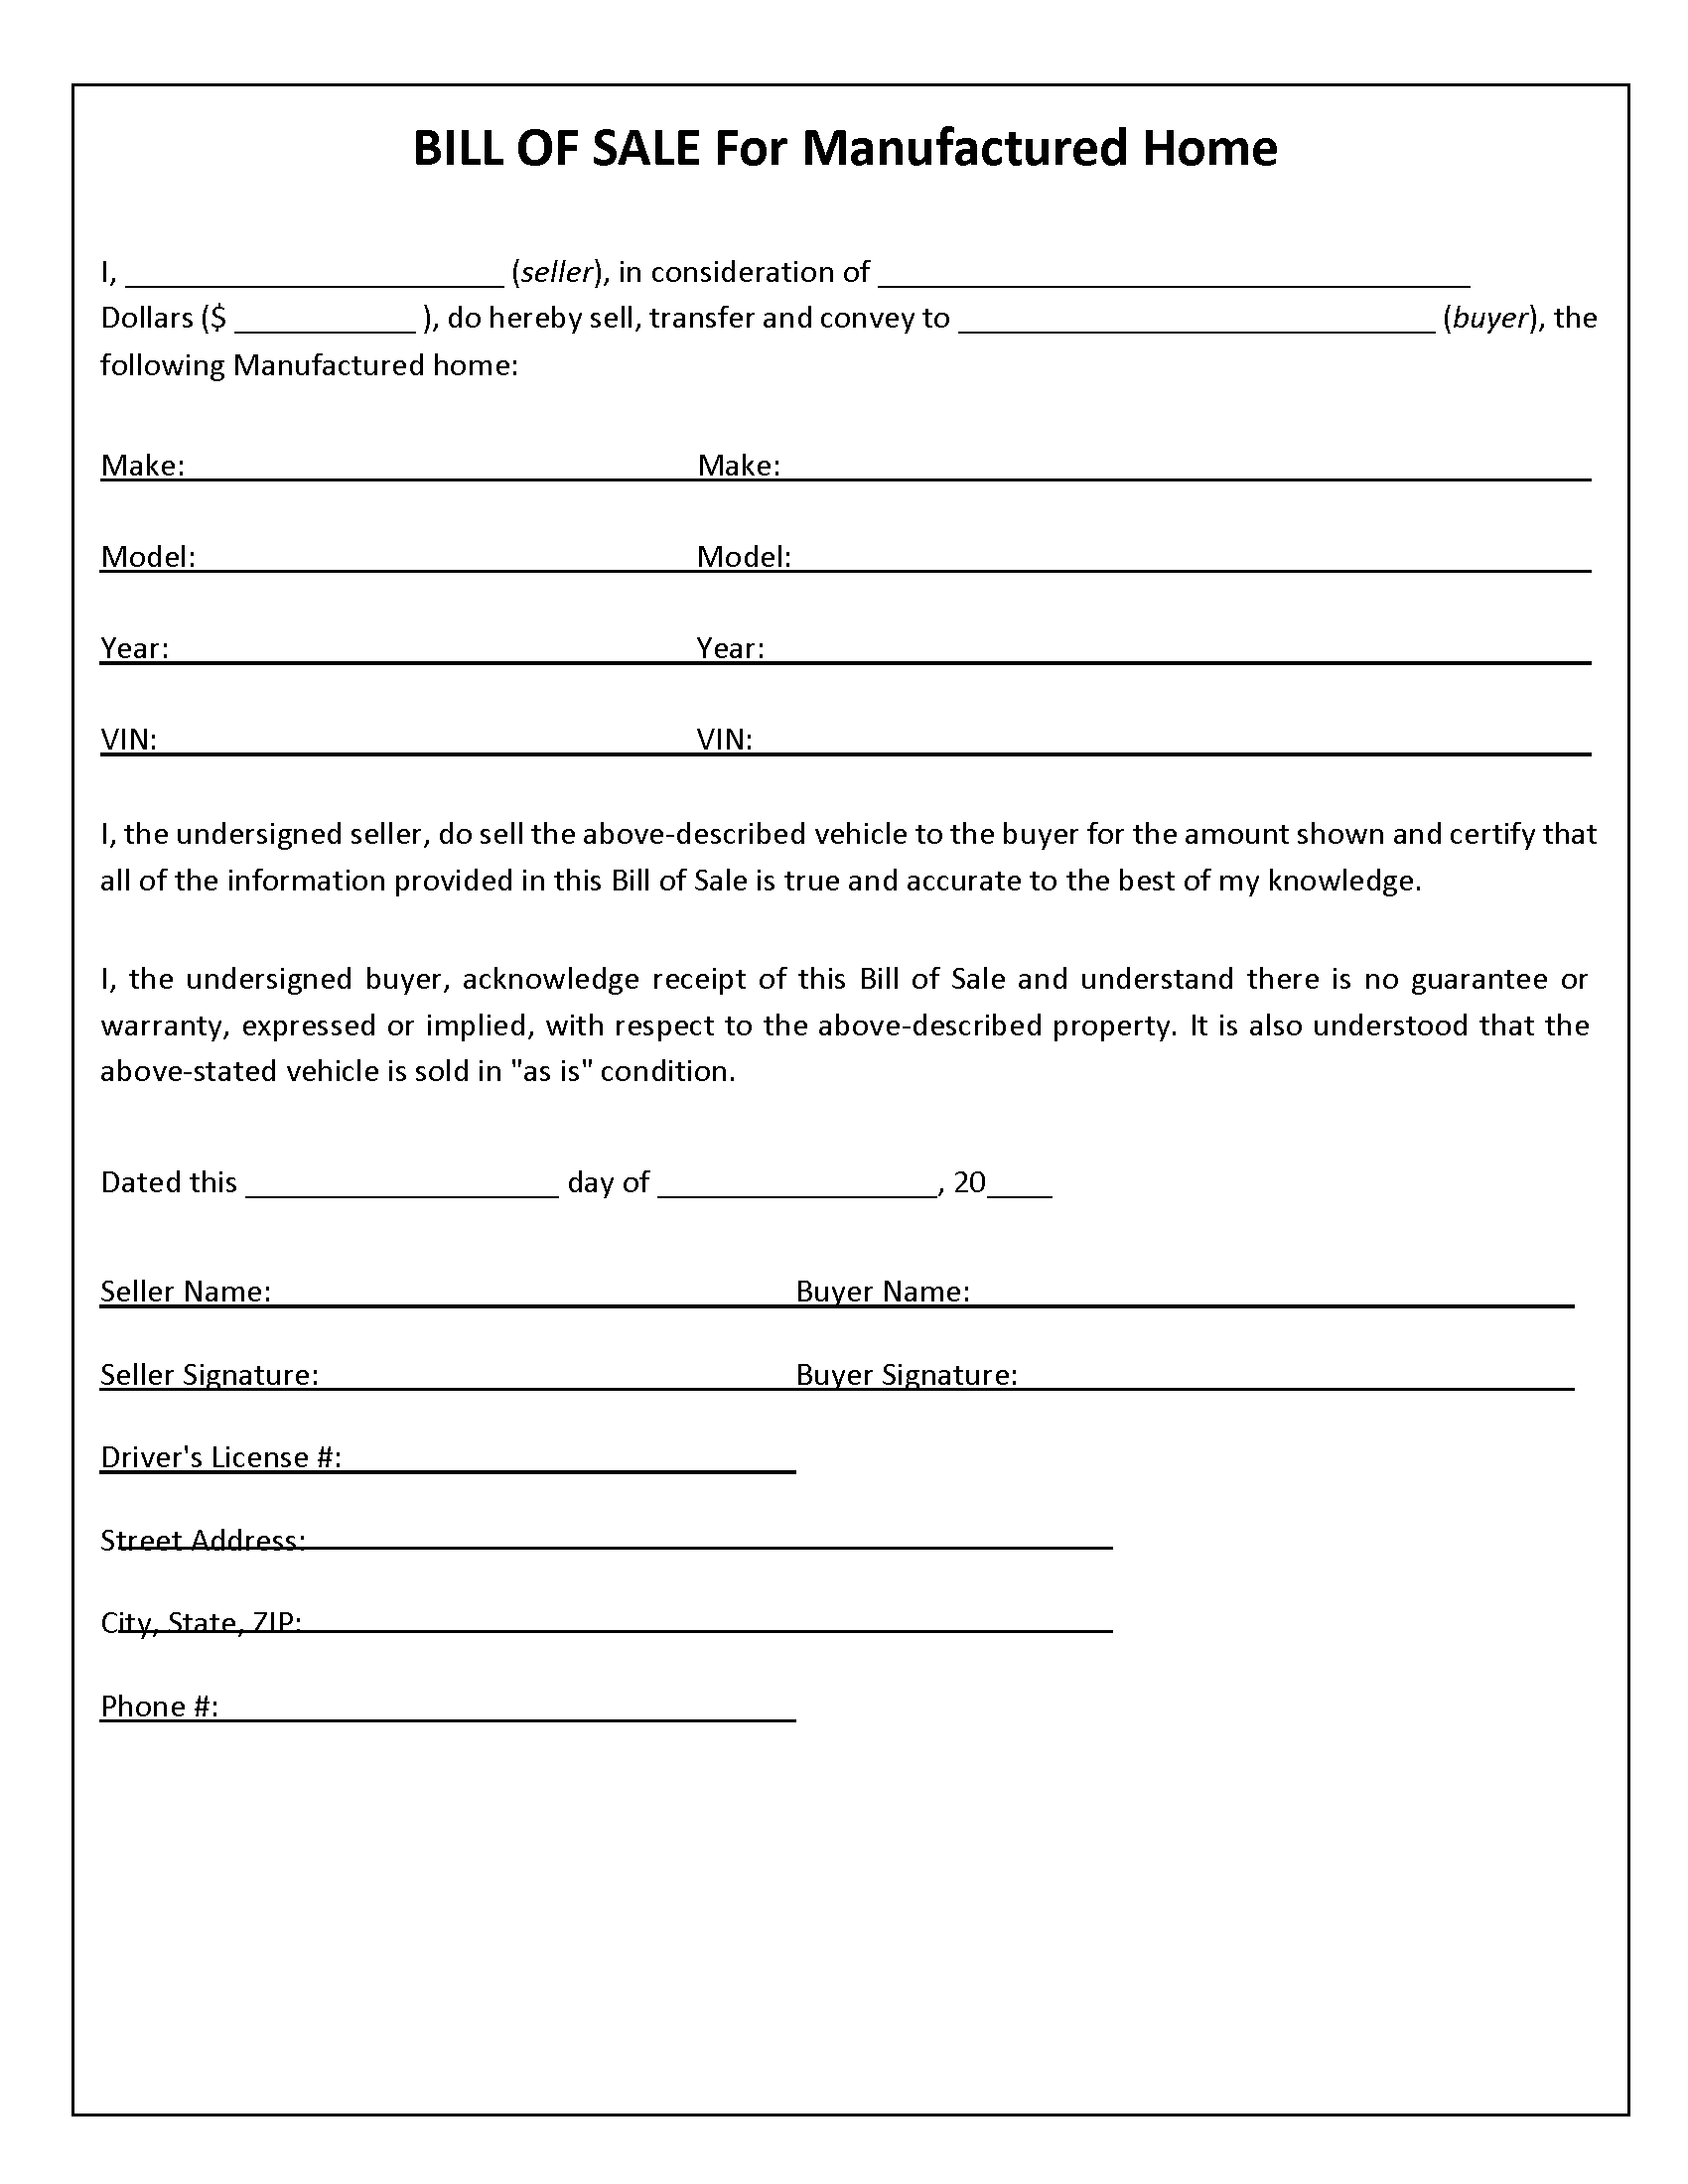 Manufactured Home Bill Of Sale Form Free Printable Legal